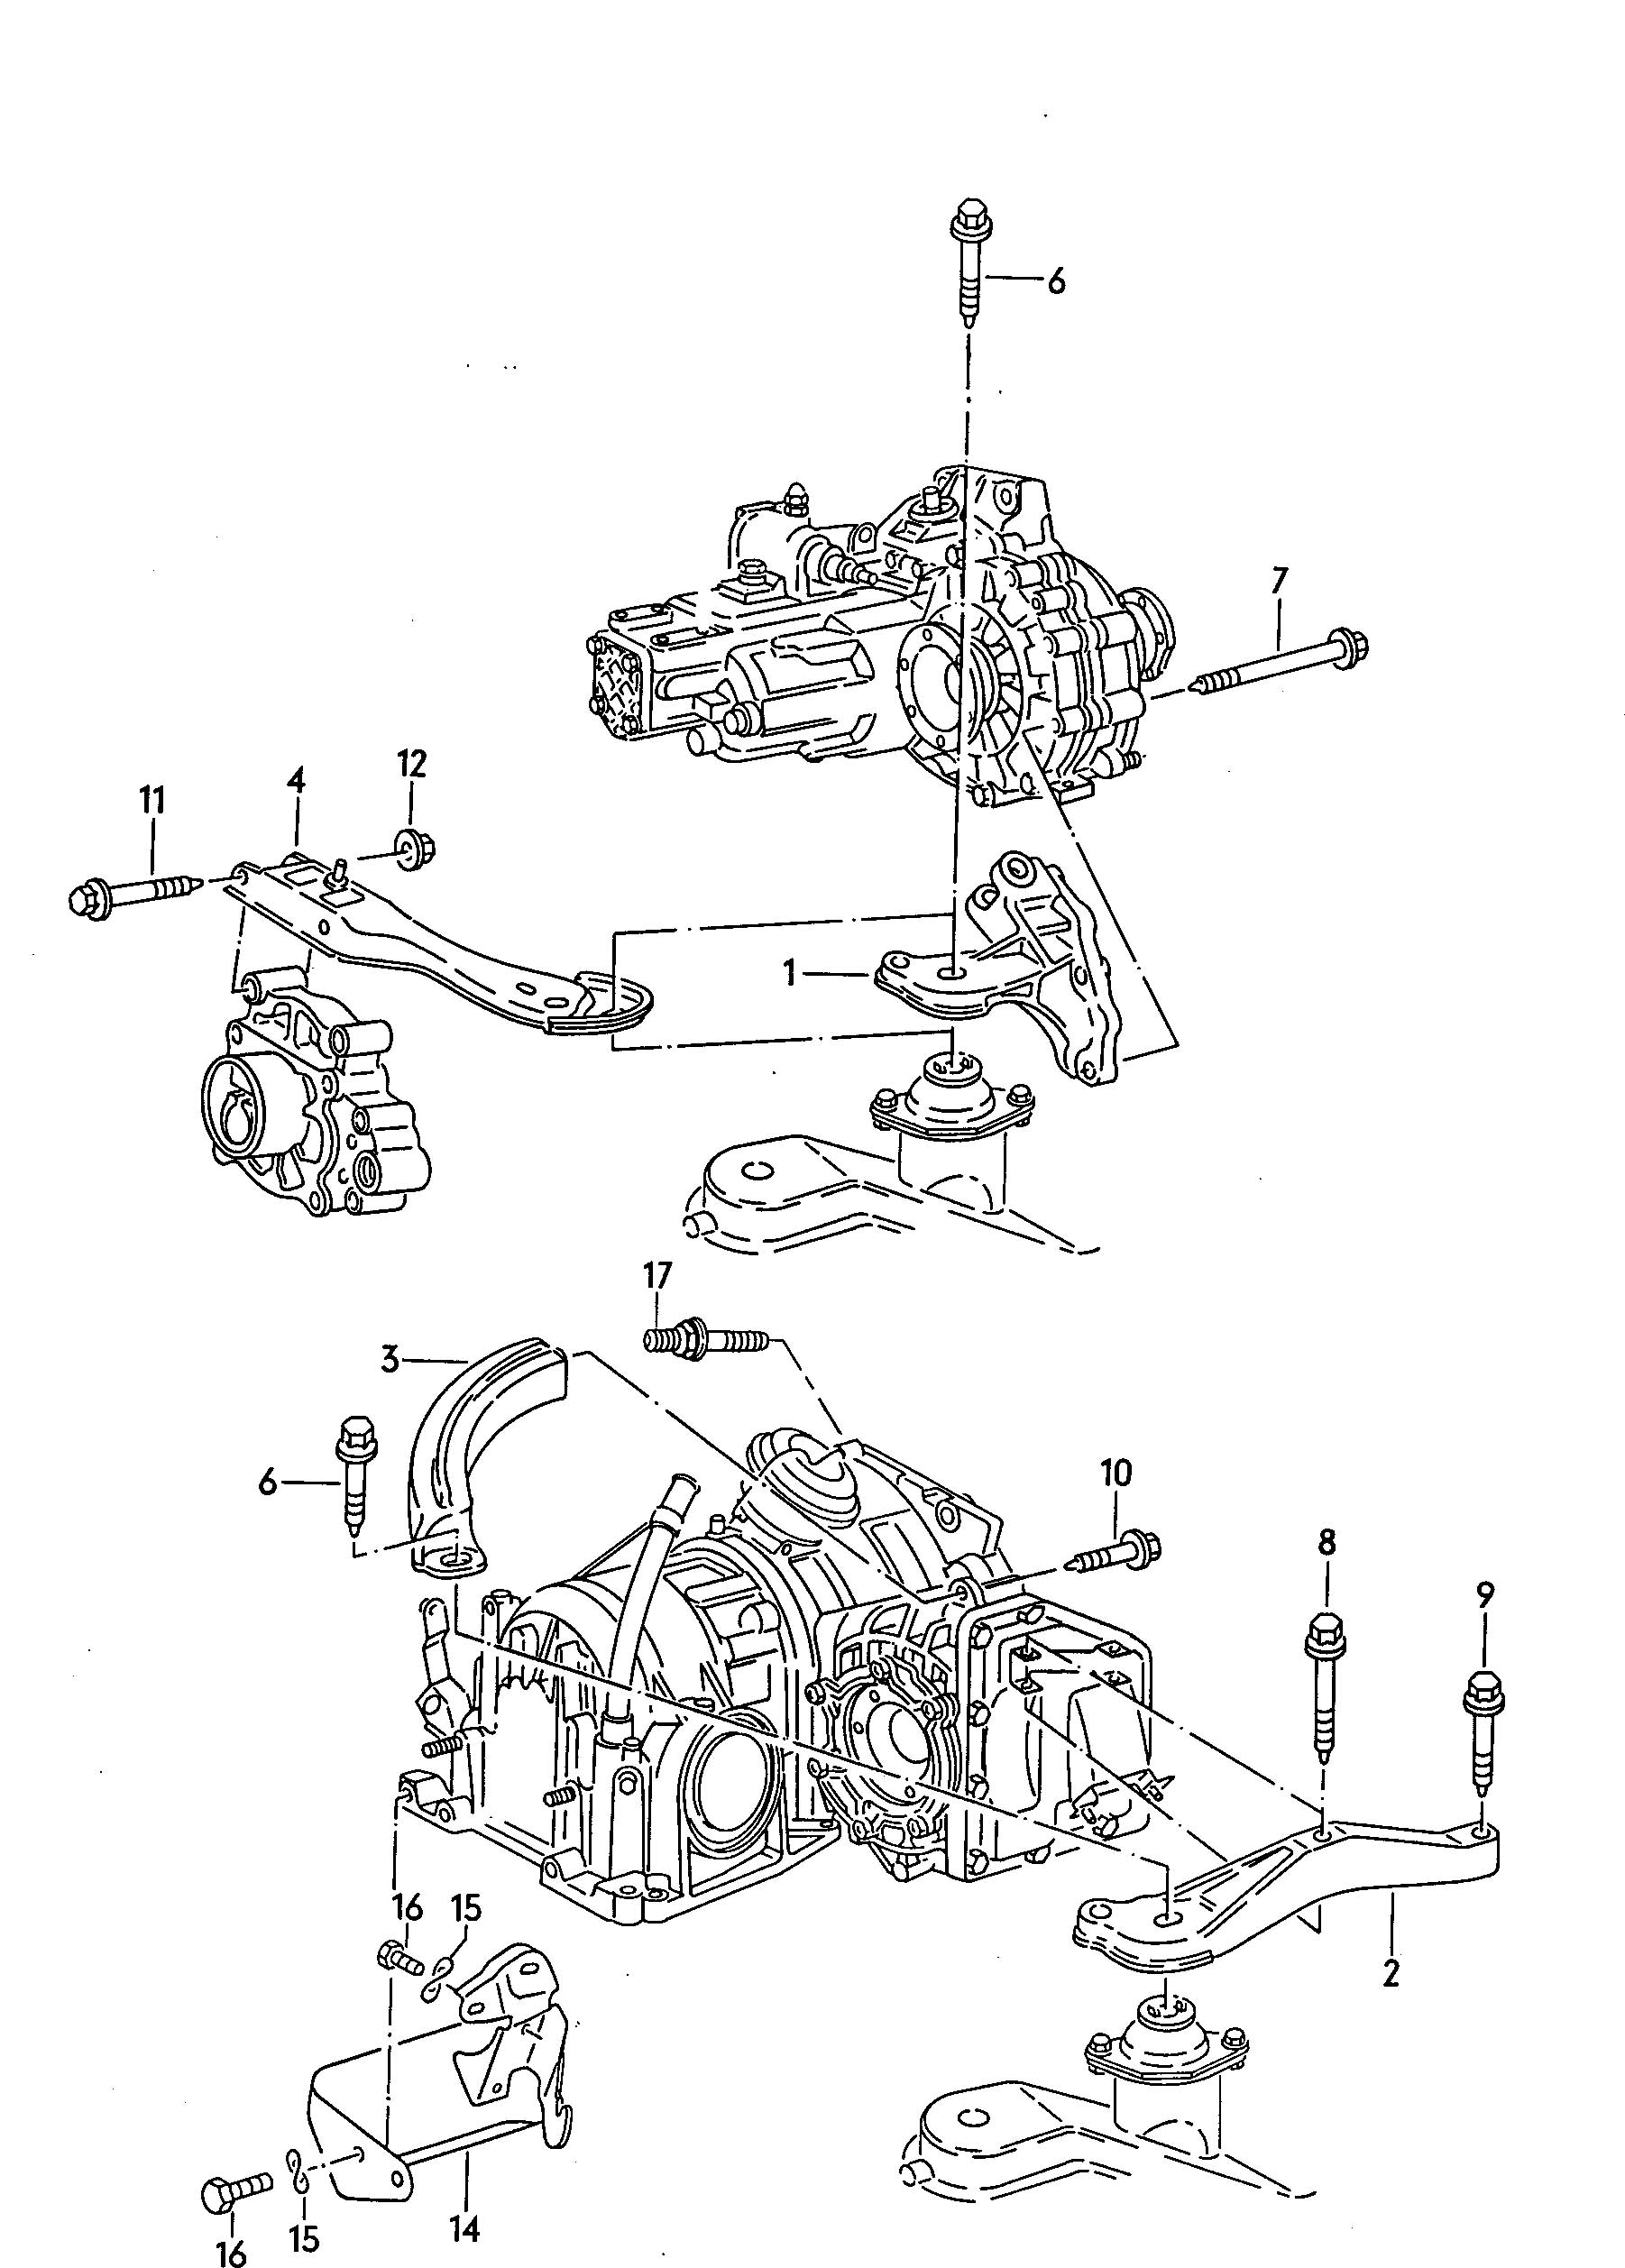 1986 Volkswagen Golf Transmission securing parts